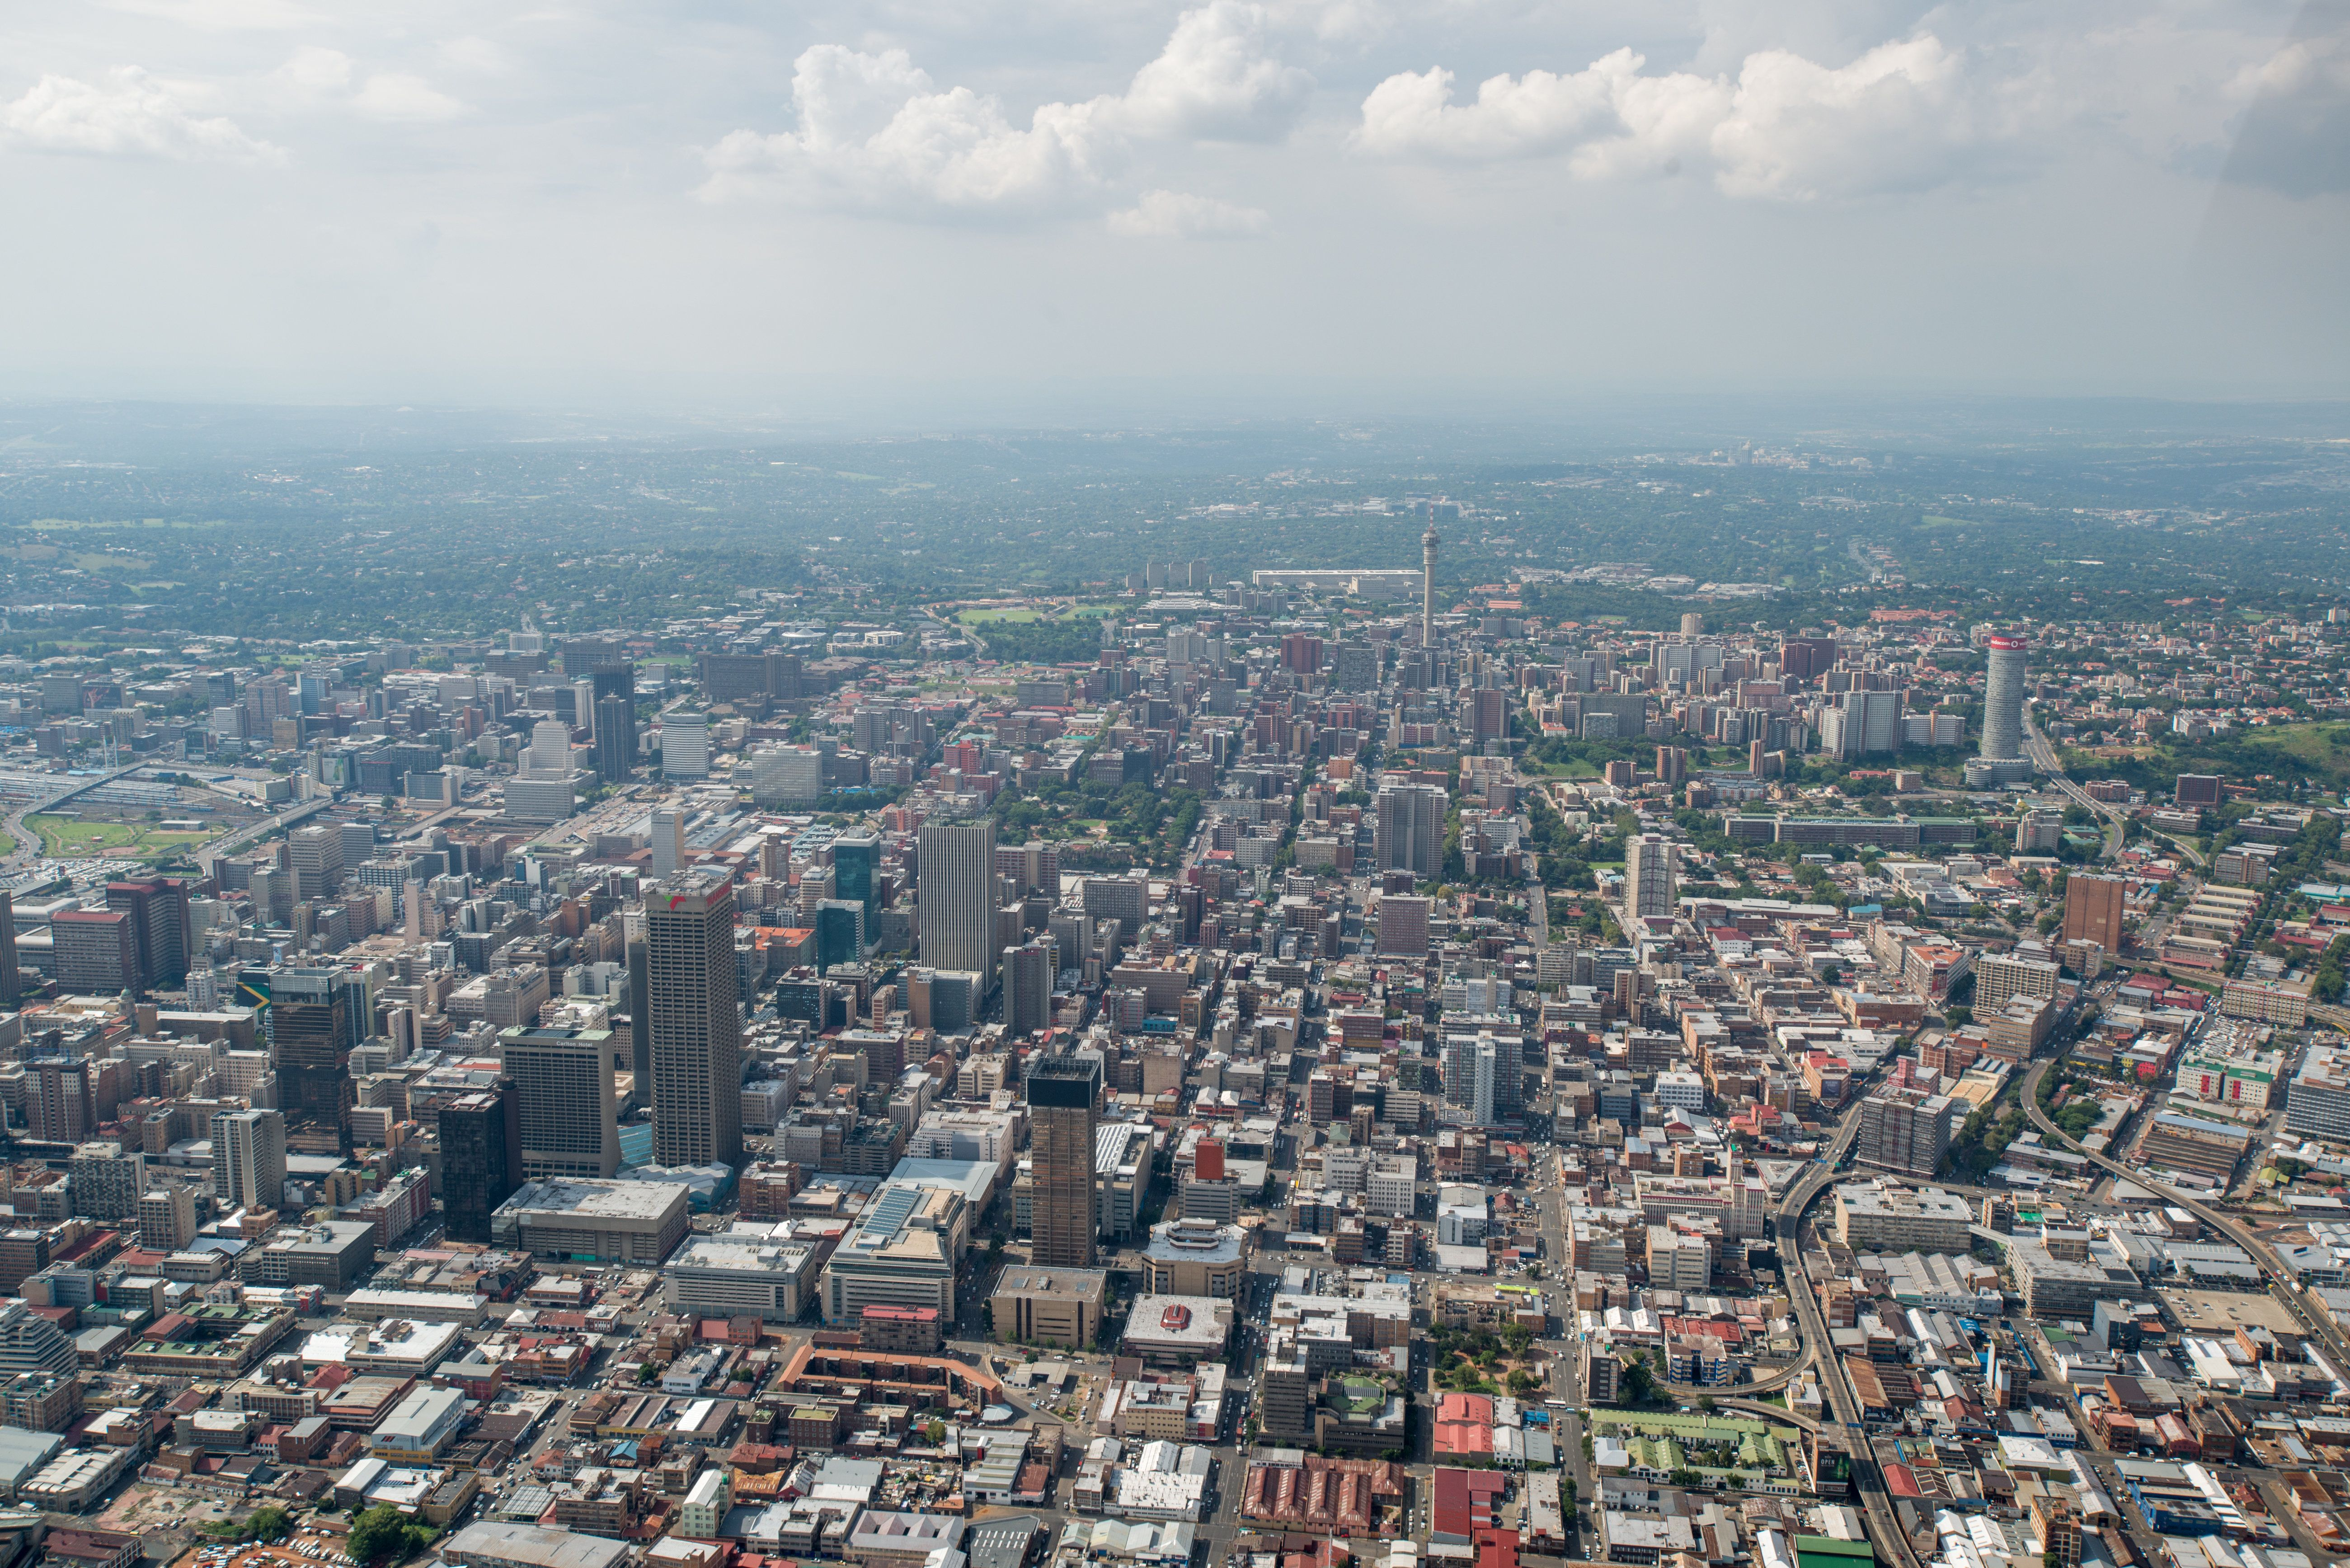 Johannesburg'sapproach to dealing with air pollution involves programs that respond to specific pollution sources.&nbsp